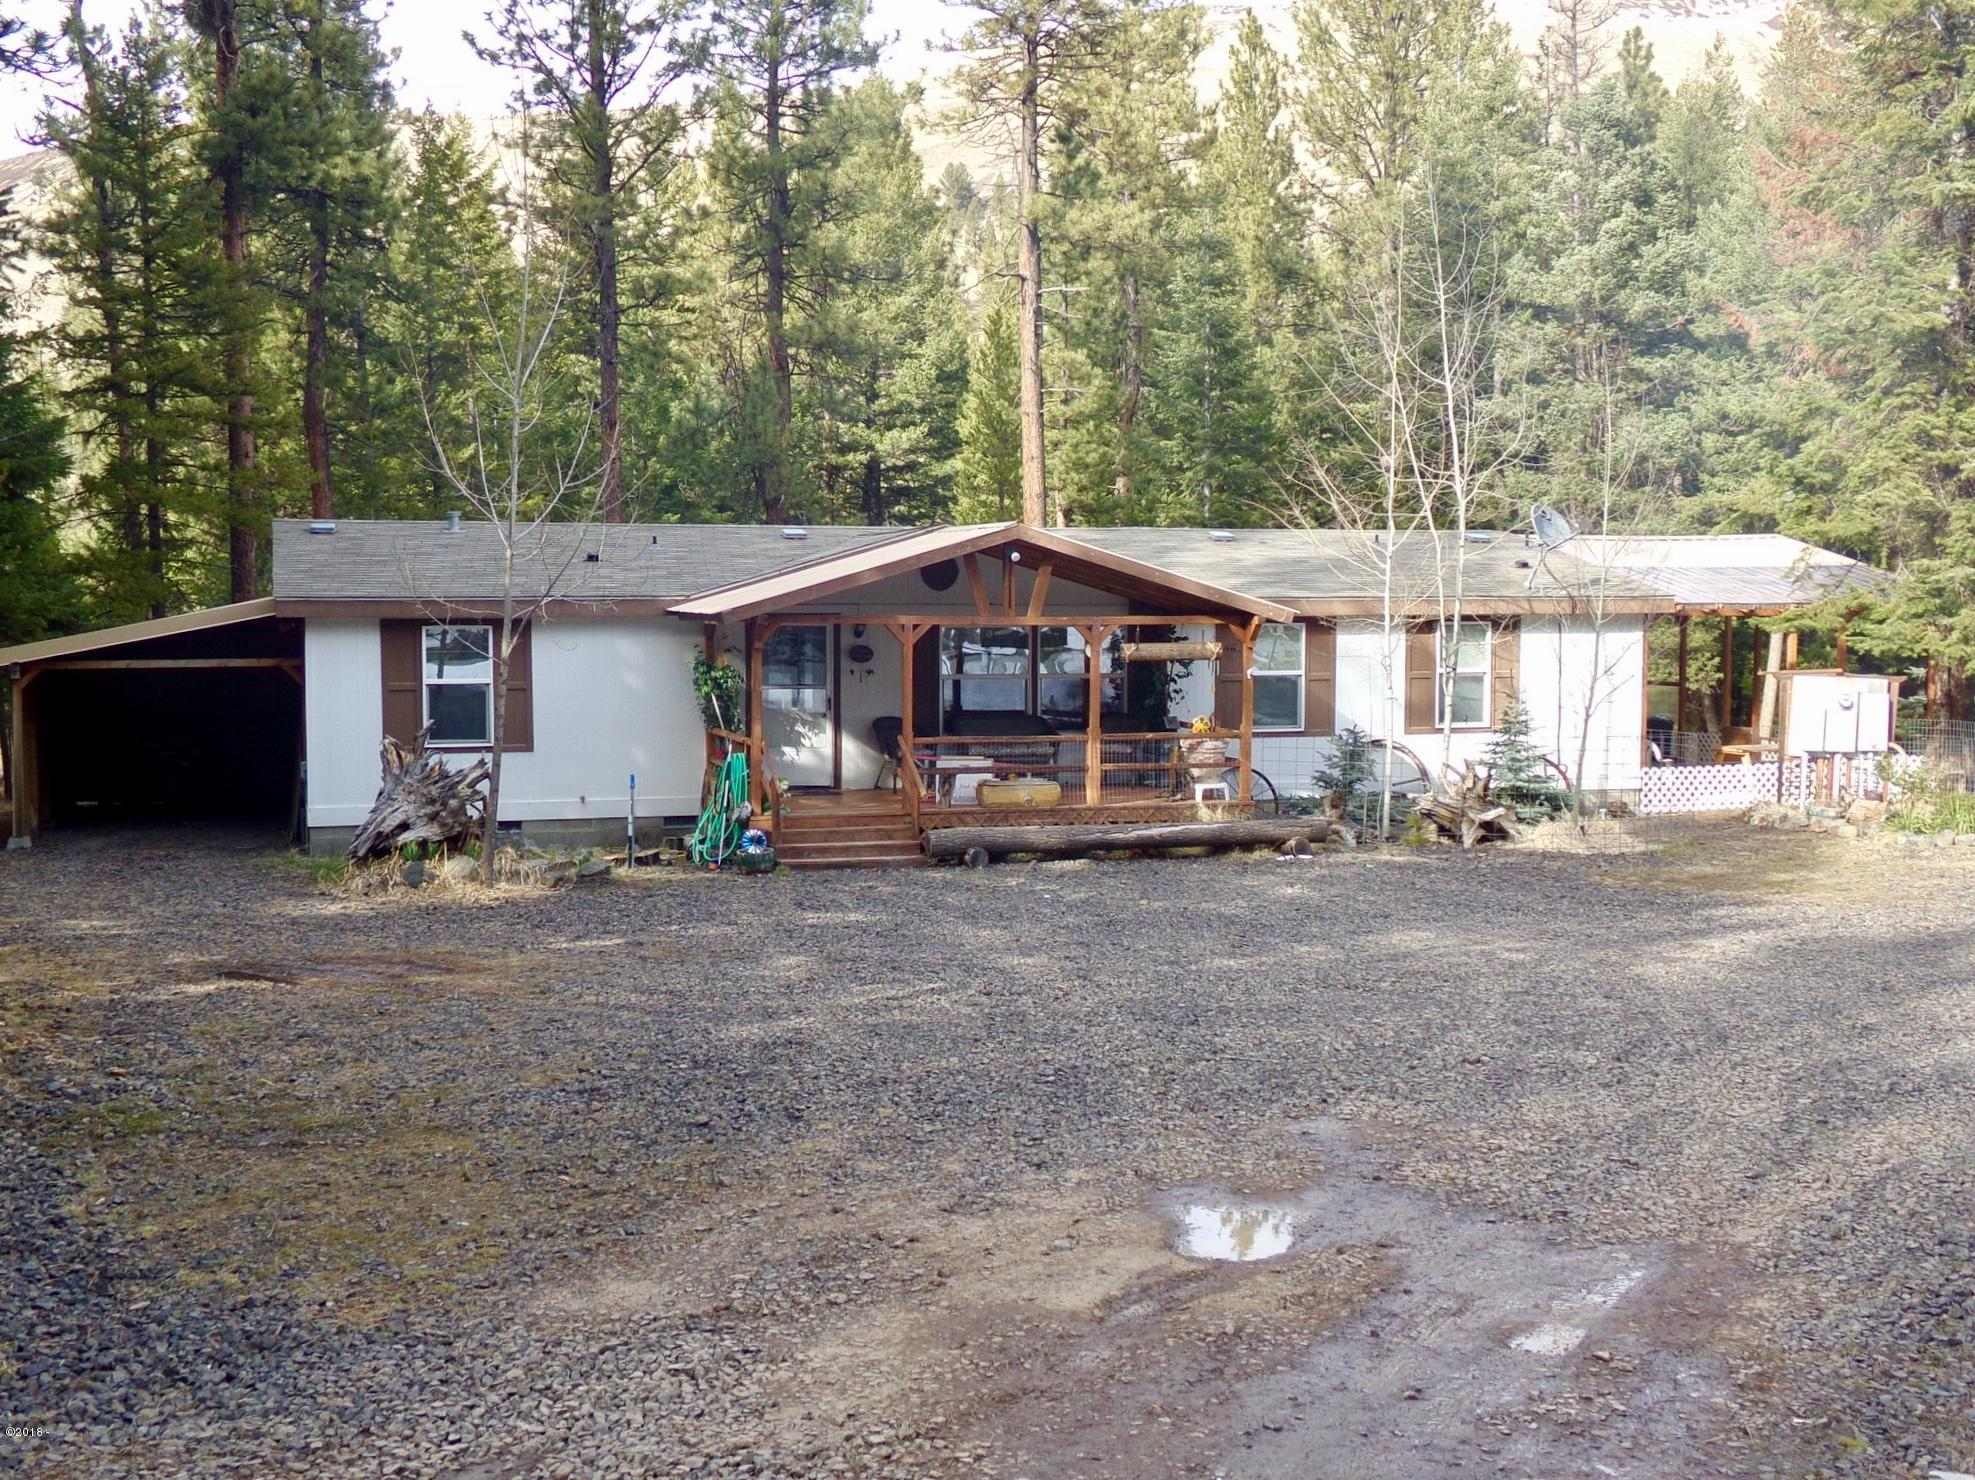 81105 Coyote Ln, Heppner, OR 97836 - 2E555D2E-8526-4246-90CD-21503FF12272